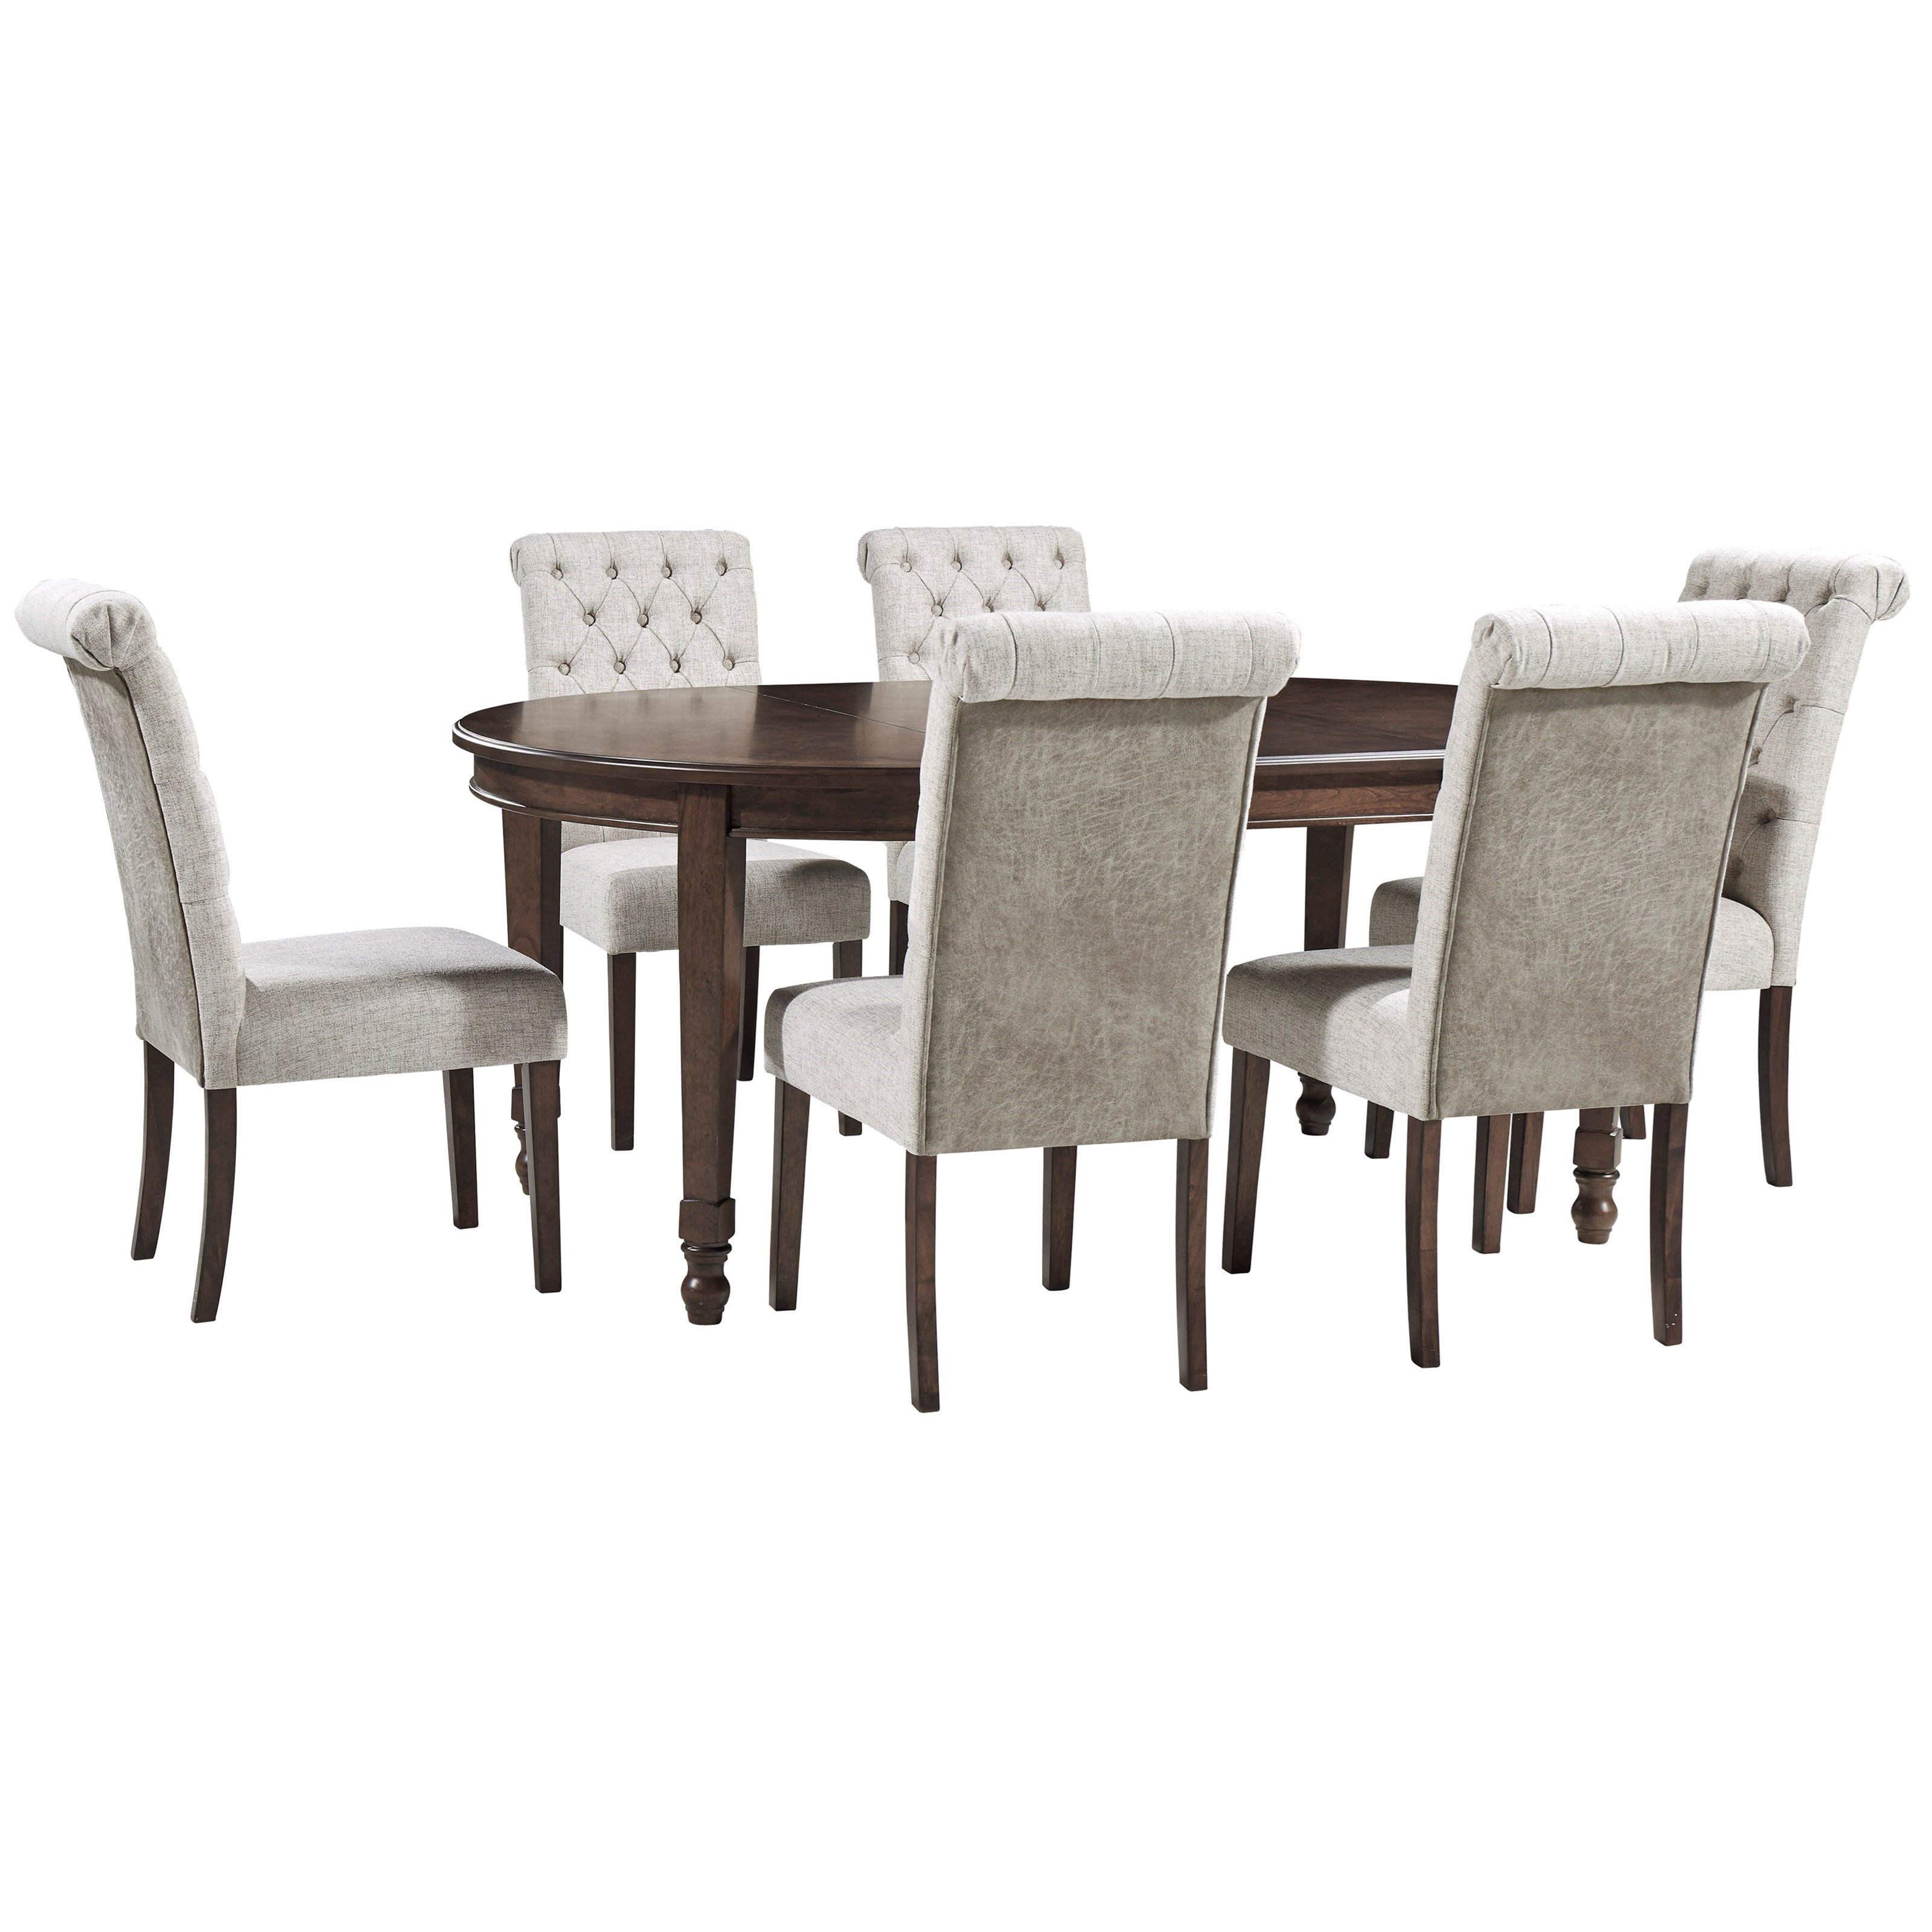 Adinton 7-Piece Table and Chair Set by Signature Design by Ashley at Northeast Factory Direct